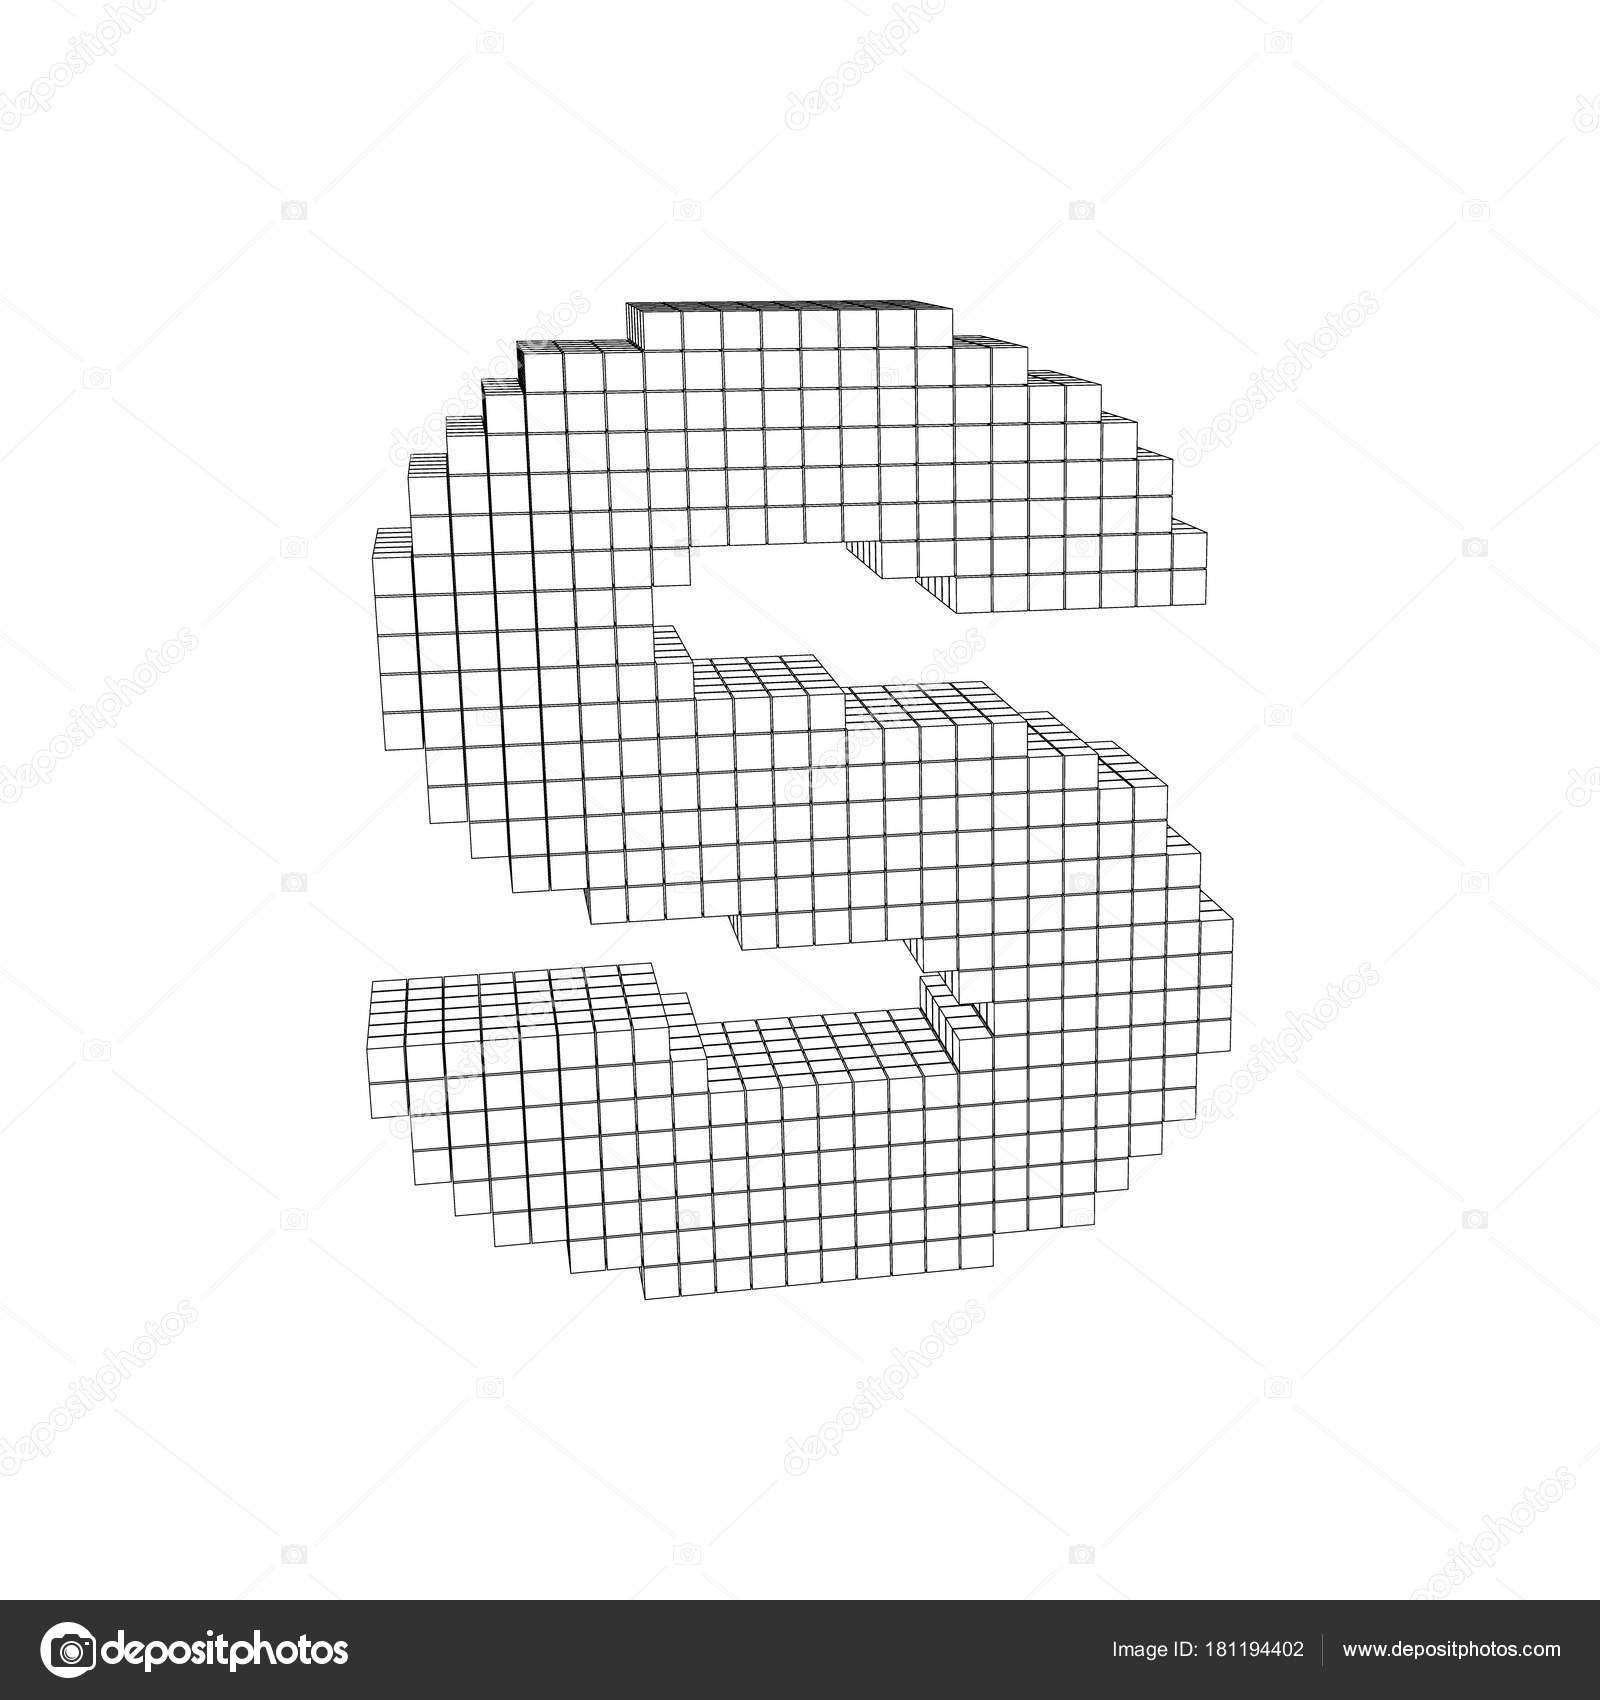 3d Pixelated Capital Letter S Isolated On White BackgroundVector Outline Illustration Vector By Eestingnef